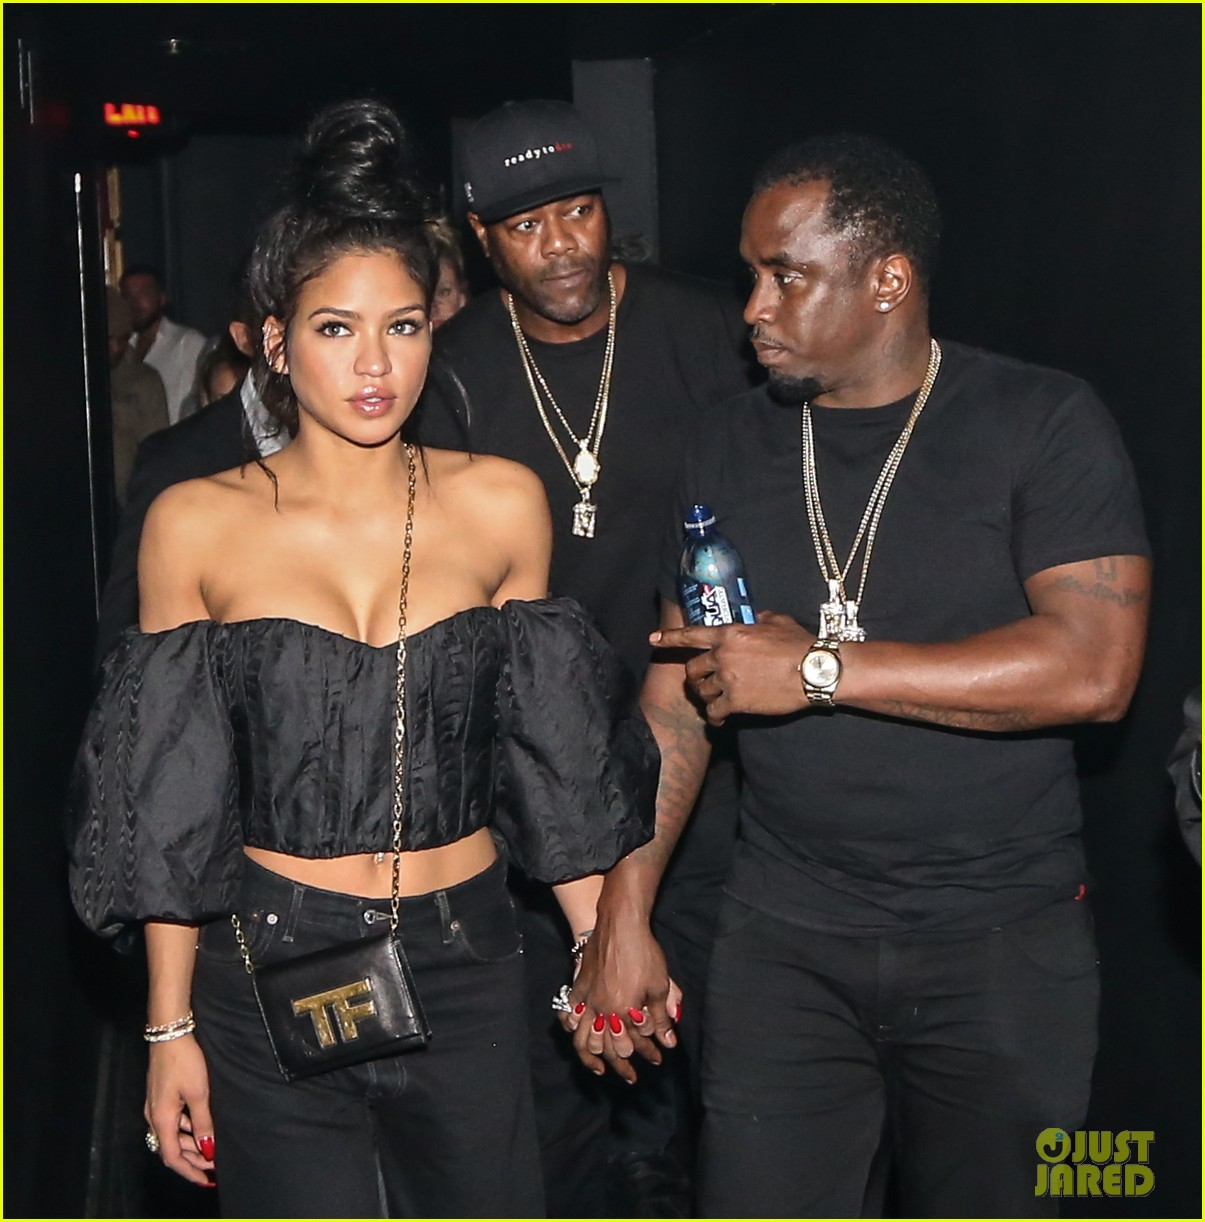 Sean Diddy Combs Amp Girlfriend Cassie Hold Hands At A Party In Miami Photo 4005861 Cassie